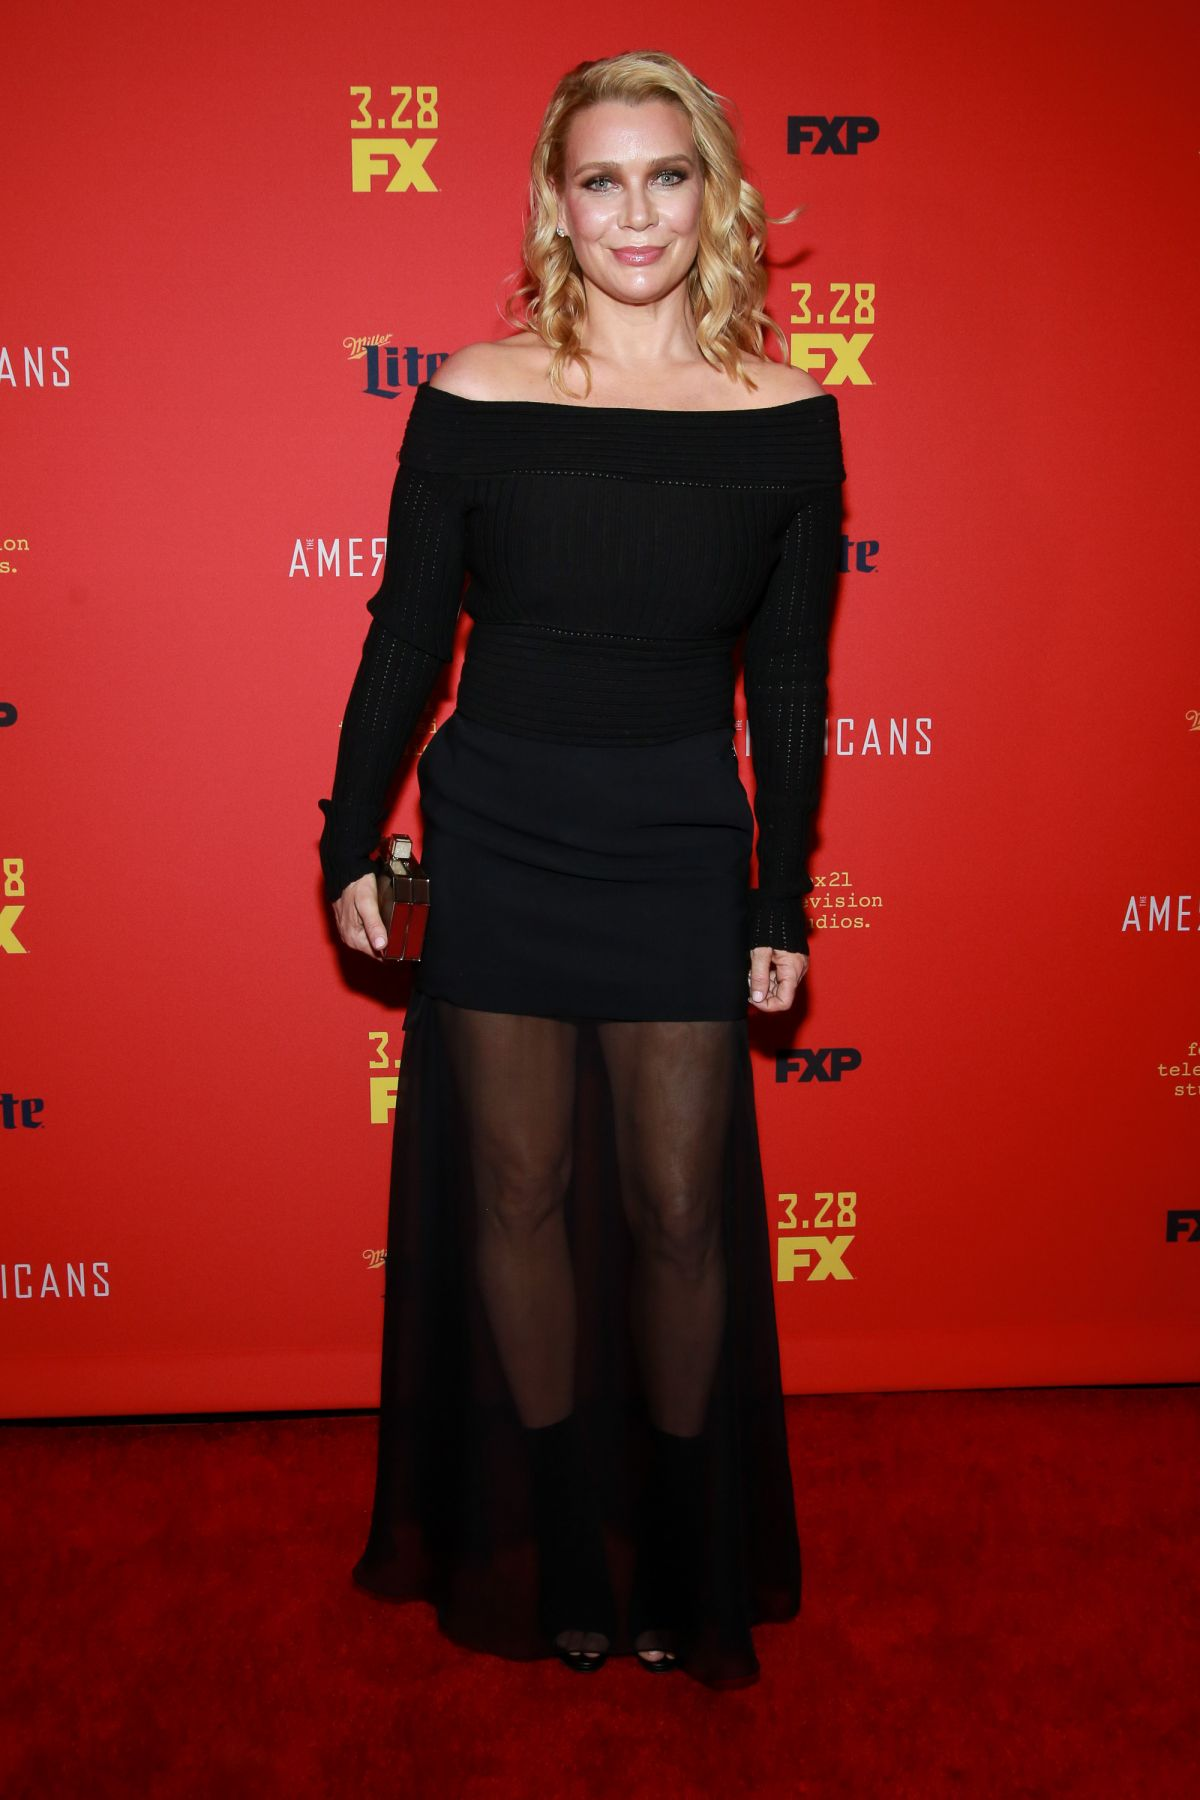 Laurie holden at the americans premiere in new york 03162018 laurie holden at the americans premiere in new york 03162018 publicscrutiny Gallery